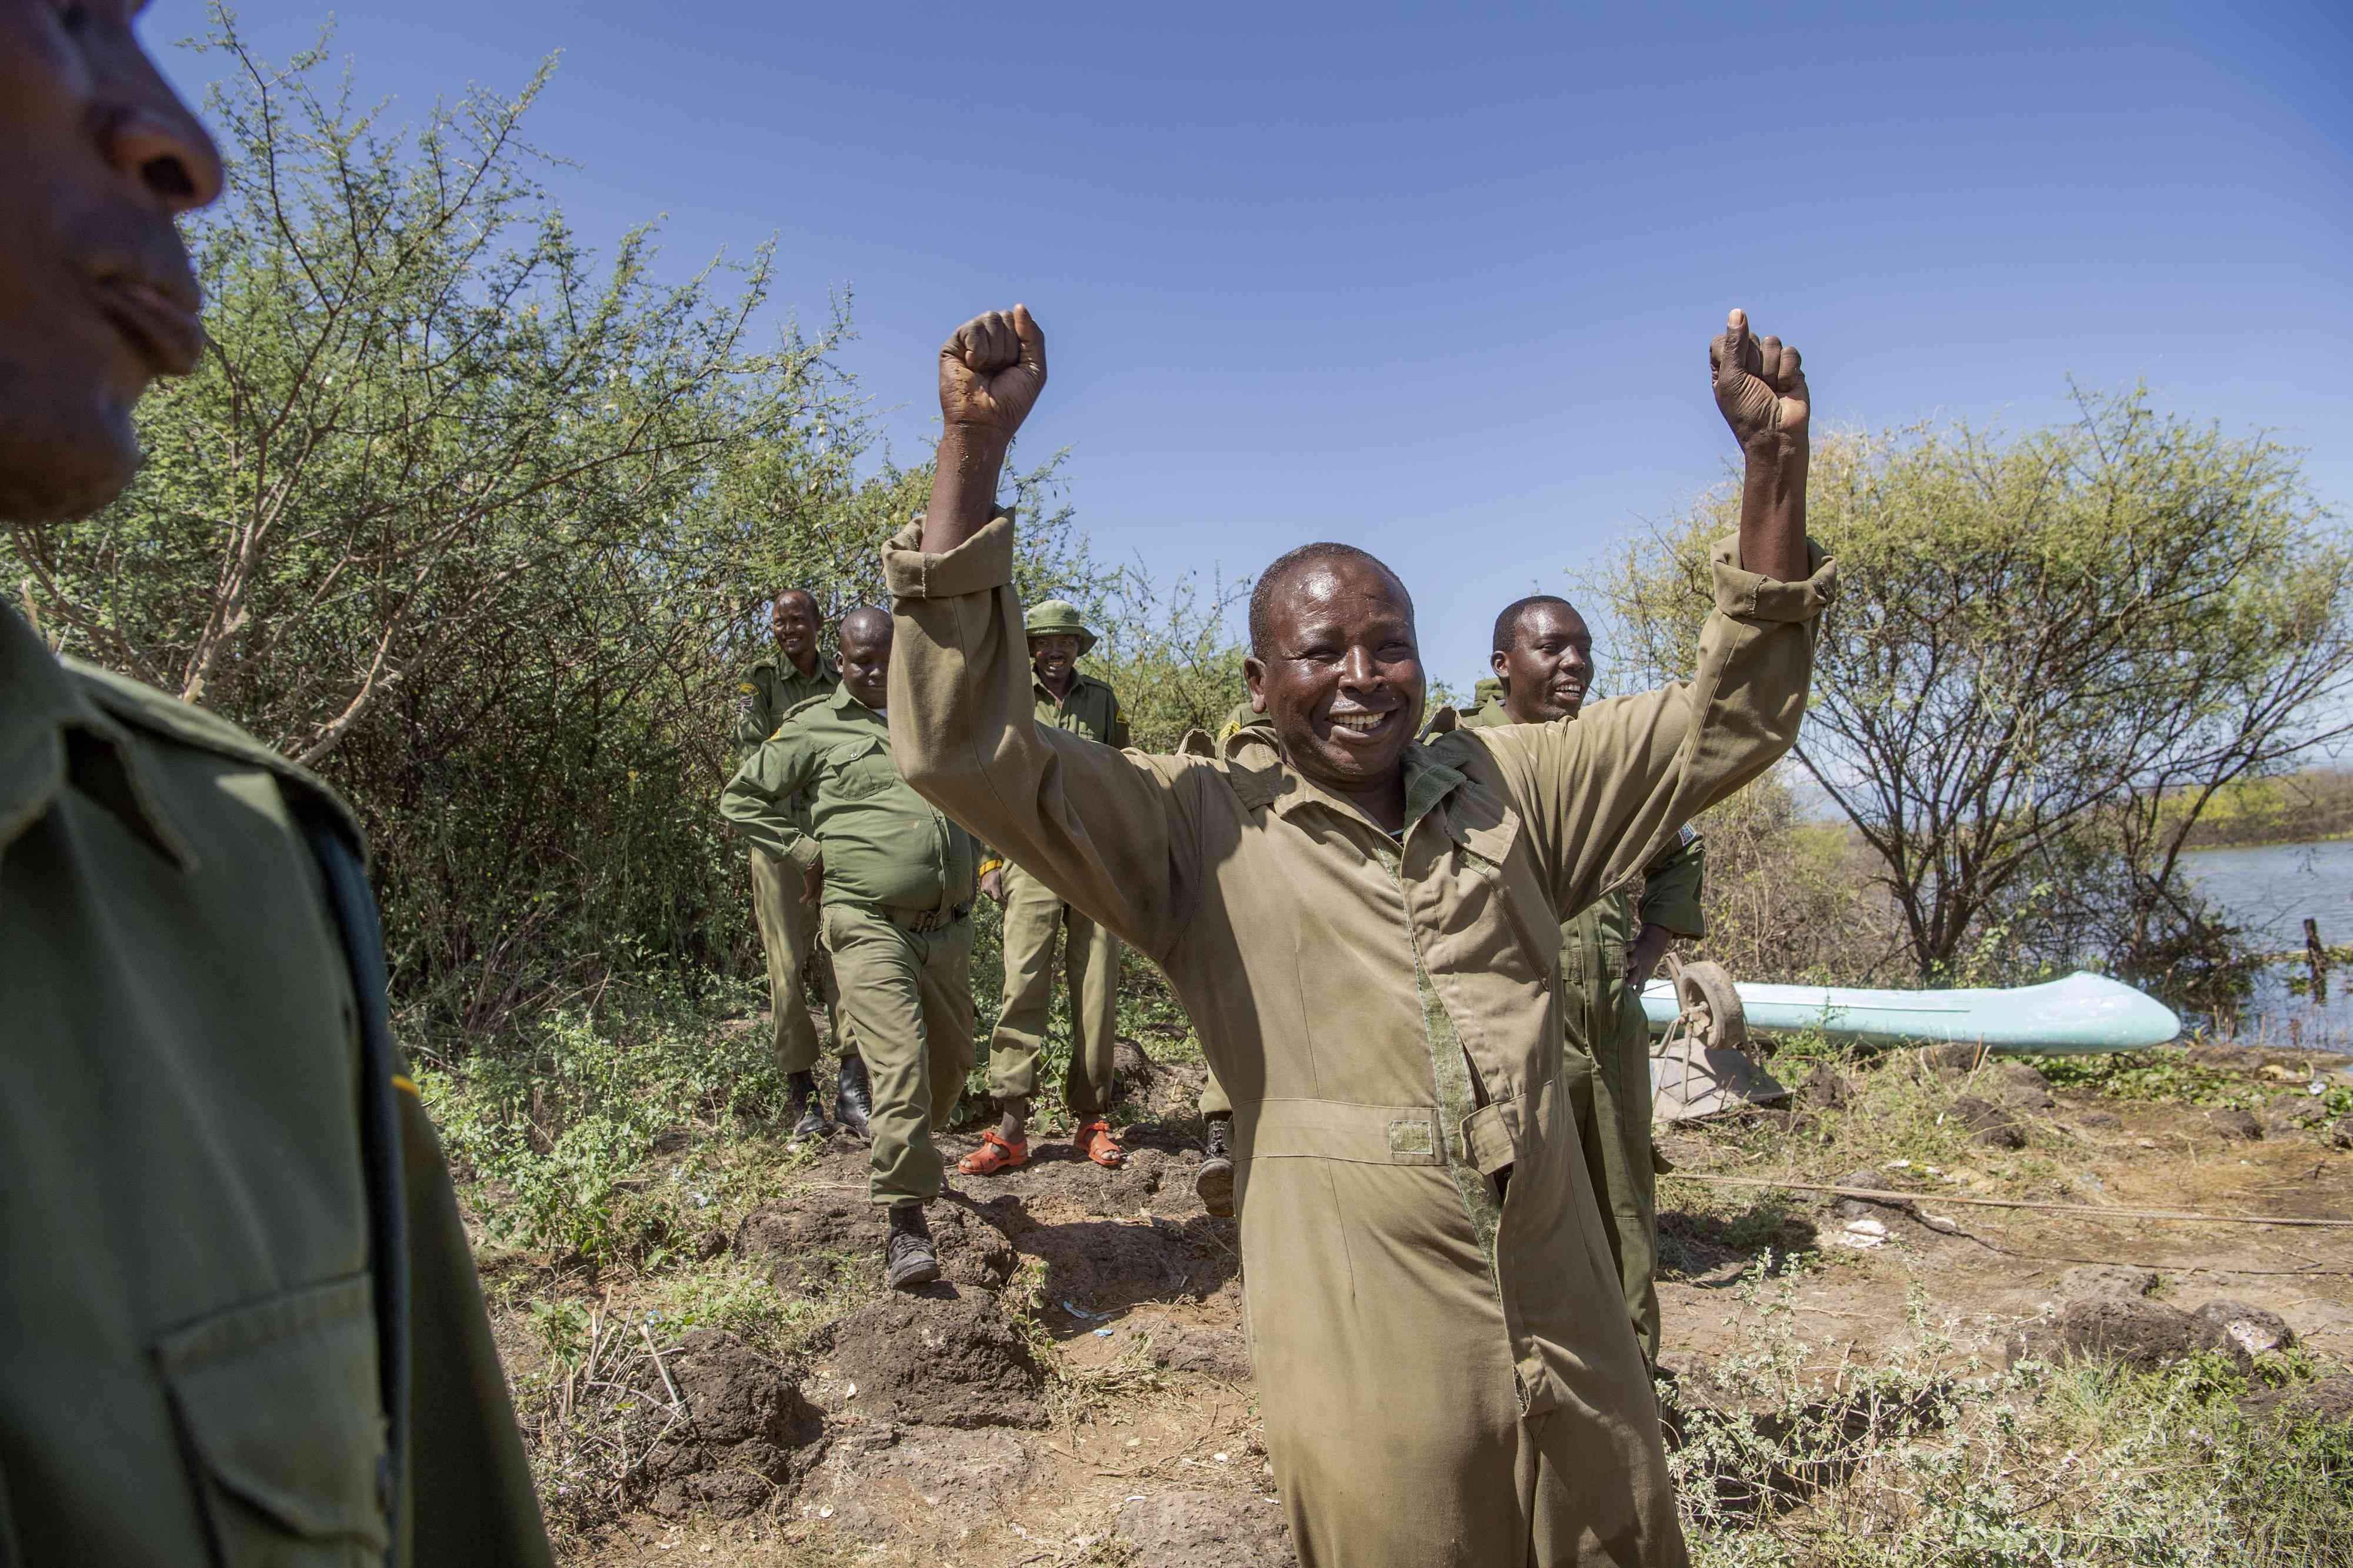 Rescuers cheer after the giraffe is successfully moved.